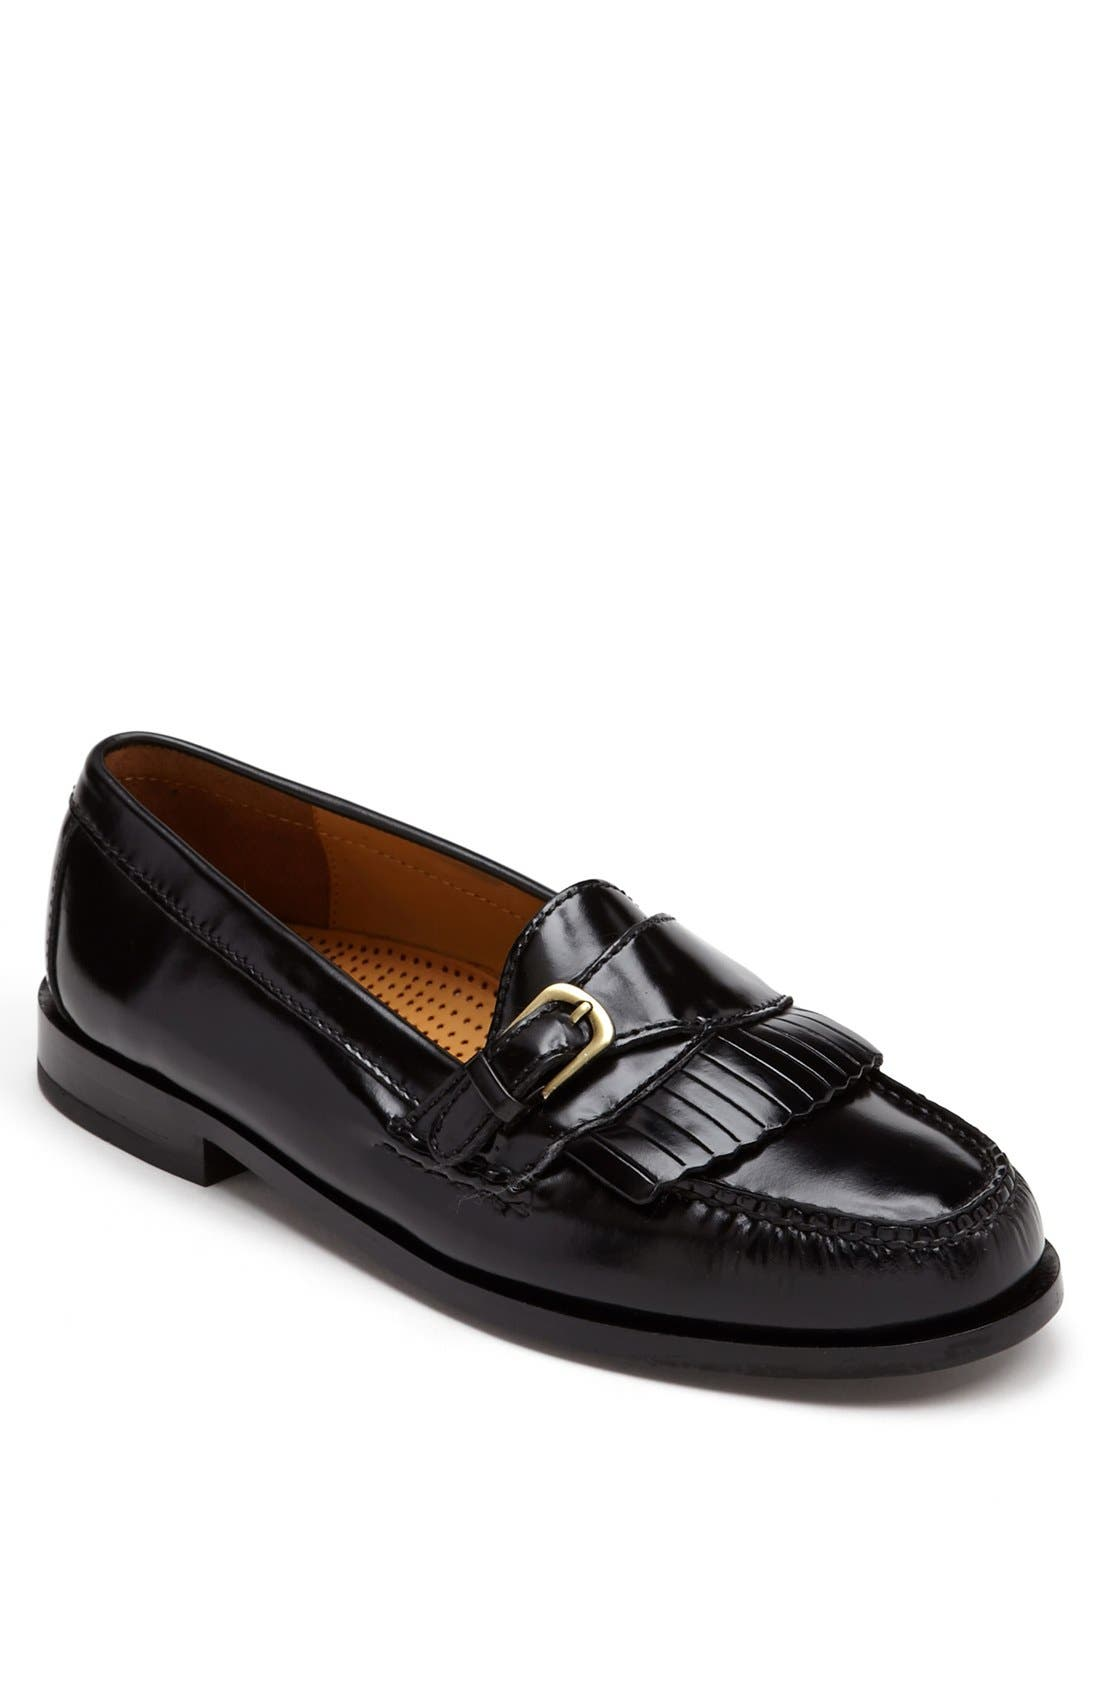 Alternate Image 1 Selected - Cole Haan 'Pinch Buckle' Loafer   (Men)